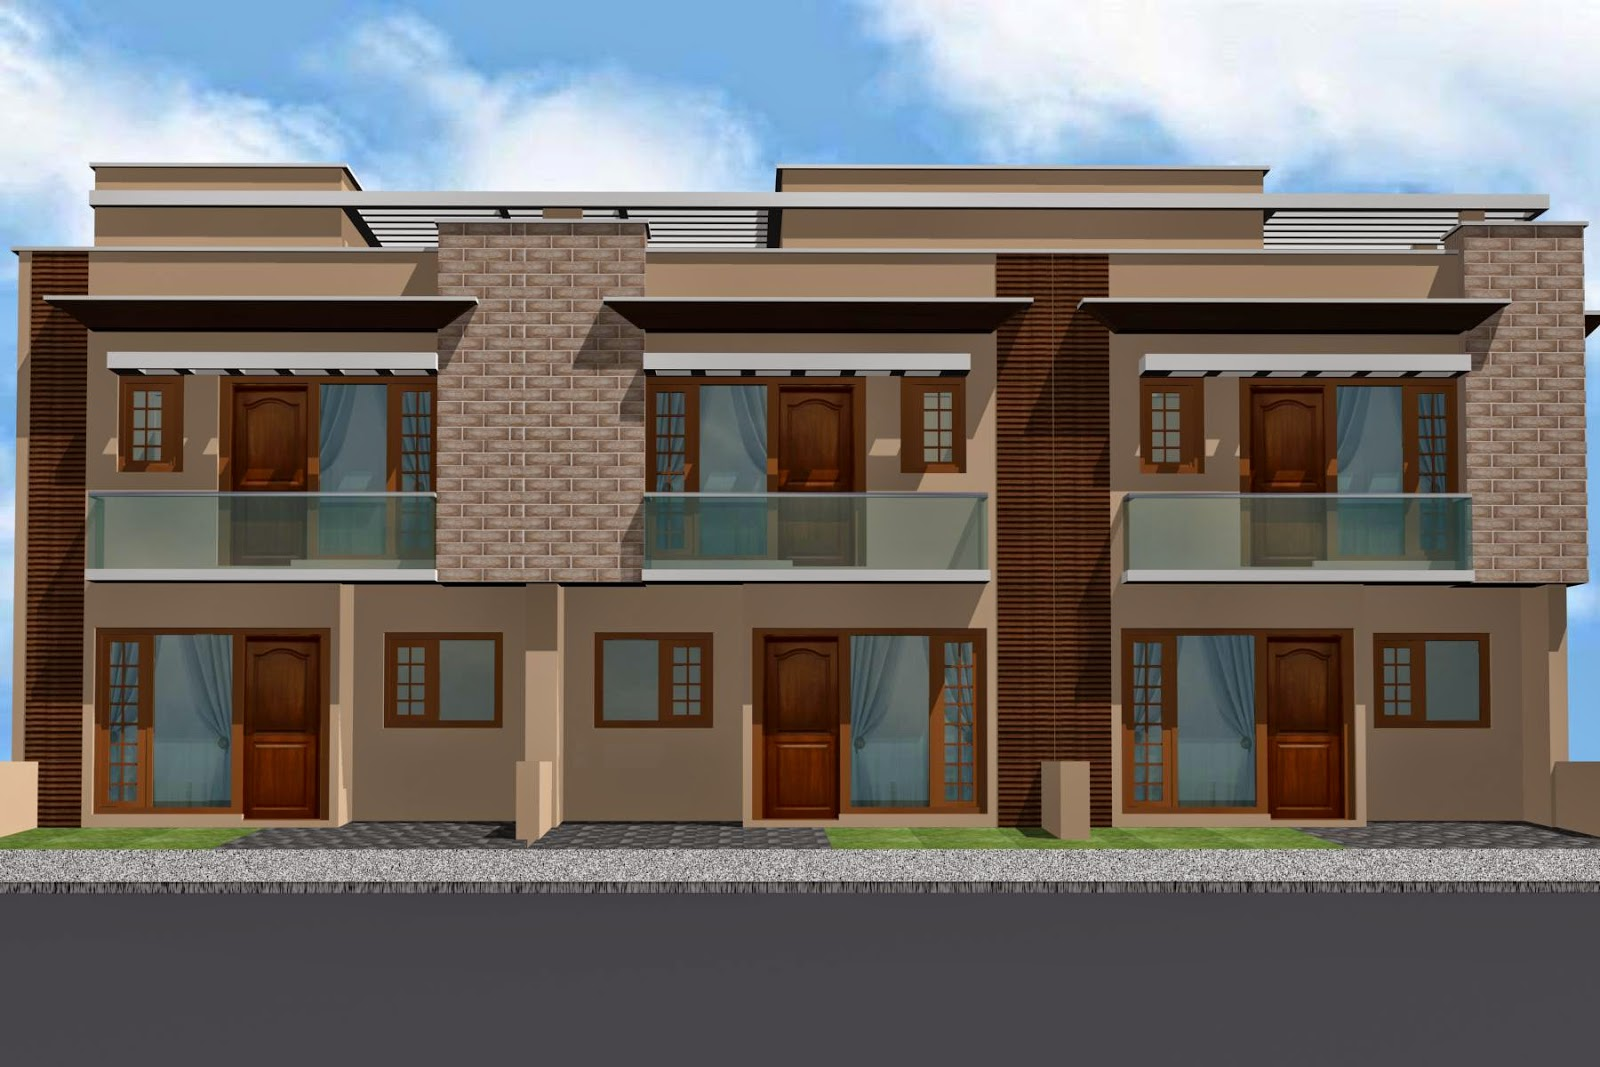 Front Elevation Of House In Chandigarh : Pin kothi for sale room drwaing looby newlly built near